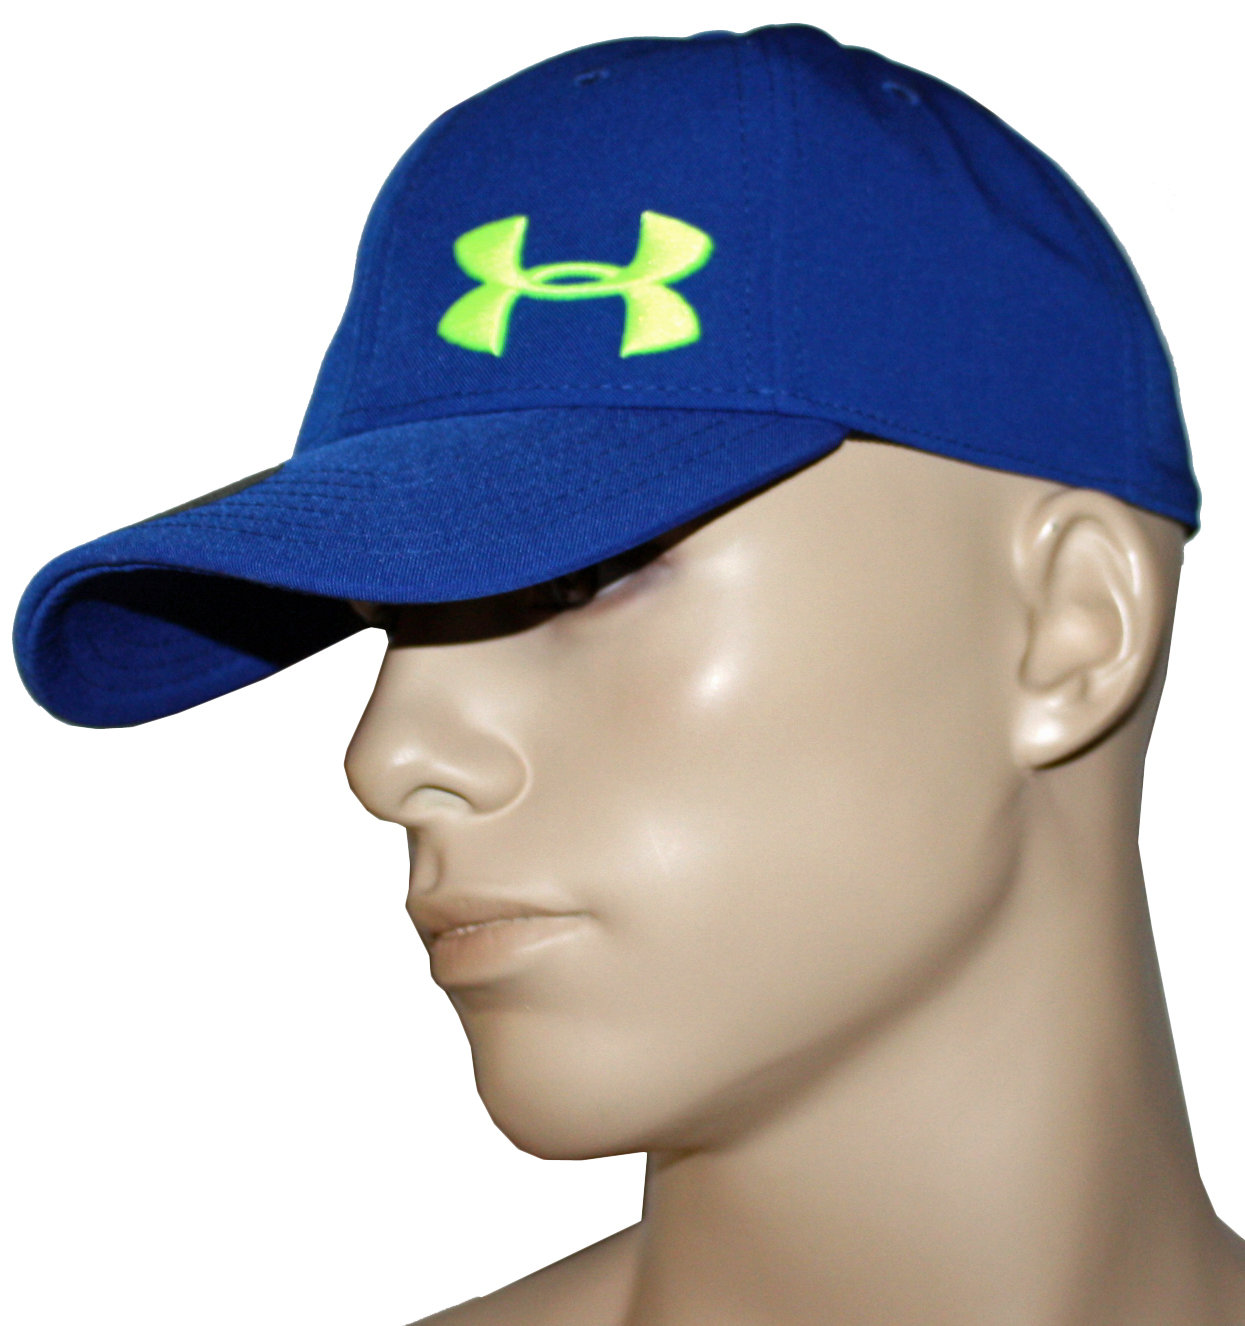 Under Armour Men's Royal Blue/High Vis Yellow UA Adjustable Hat 14637